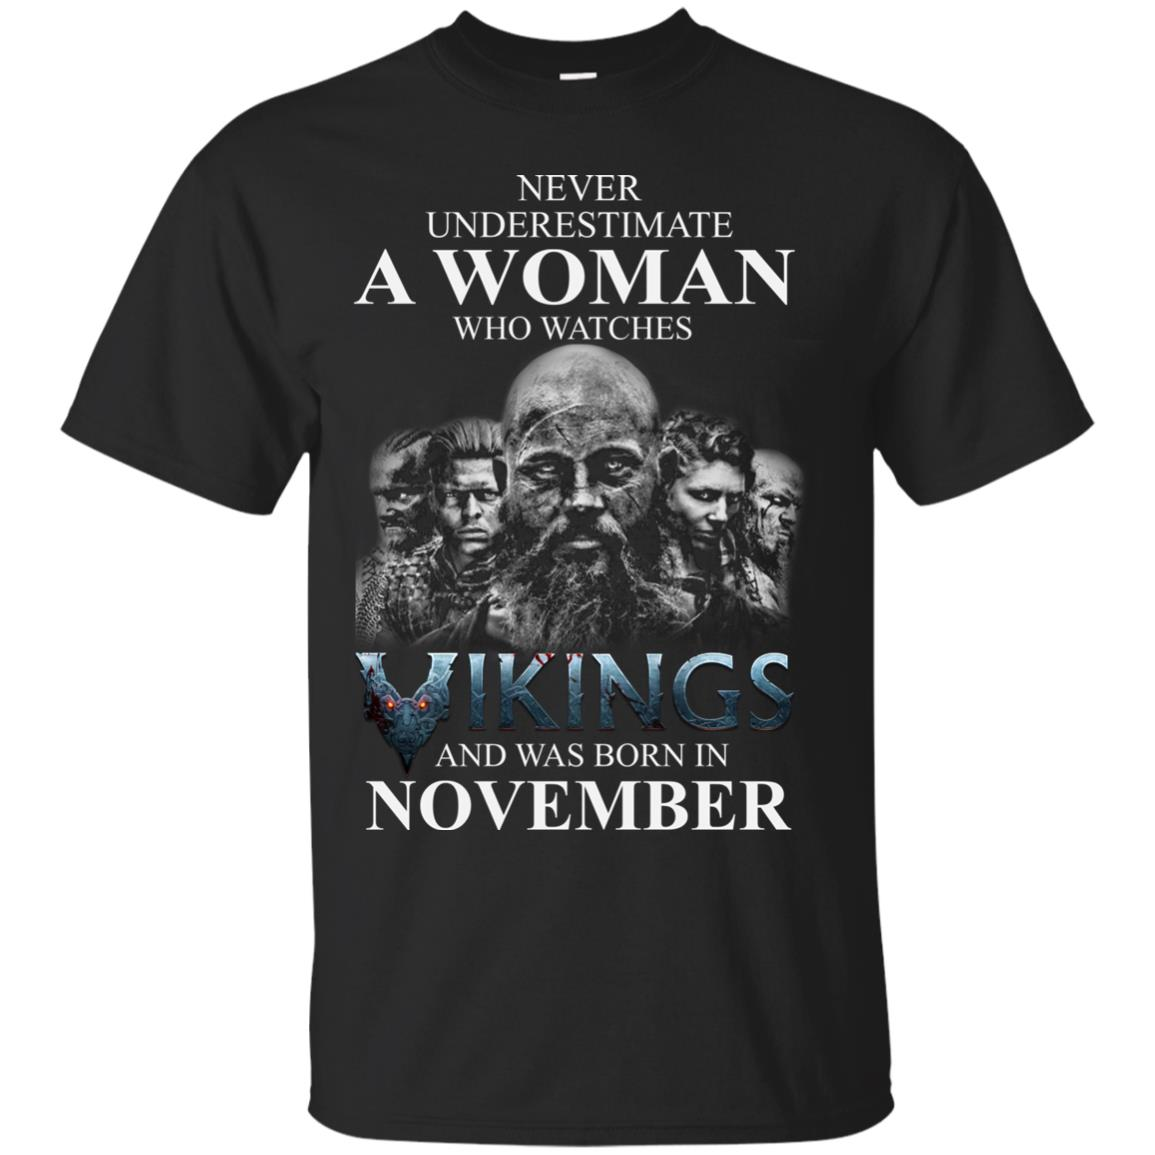 image 1231 - Never Underestimate A woman who watches Vikings and was born in November shirt